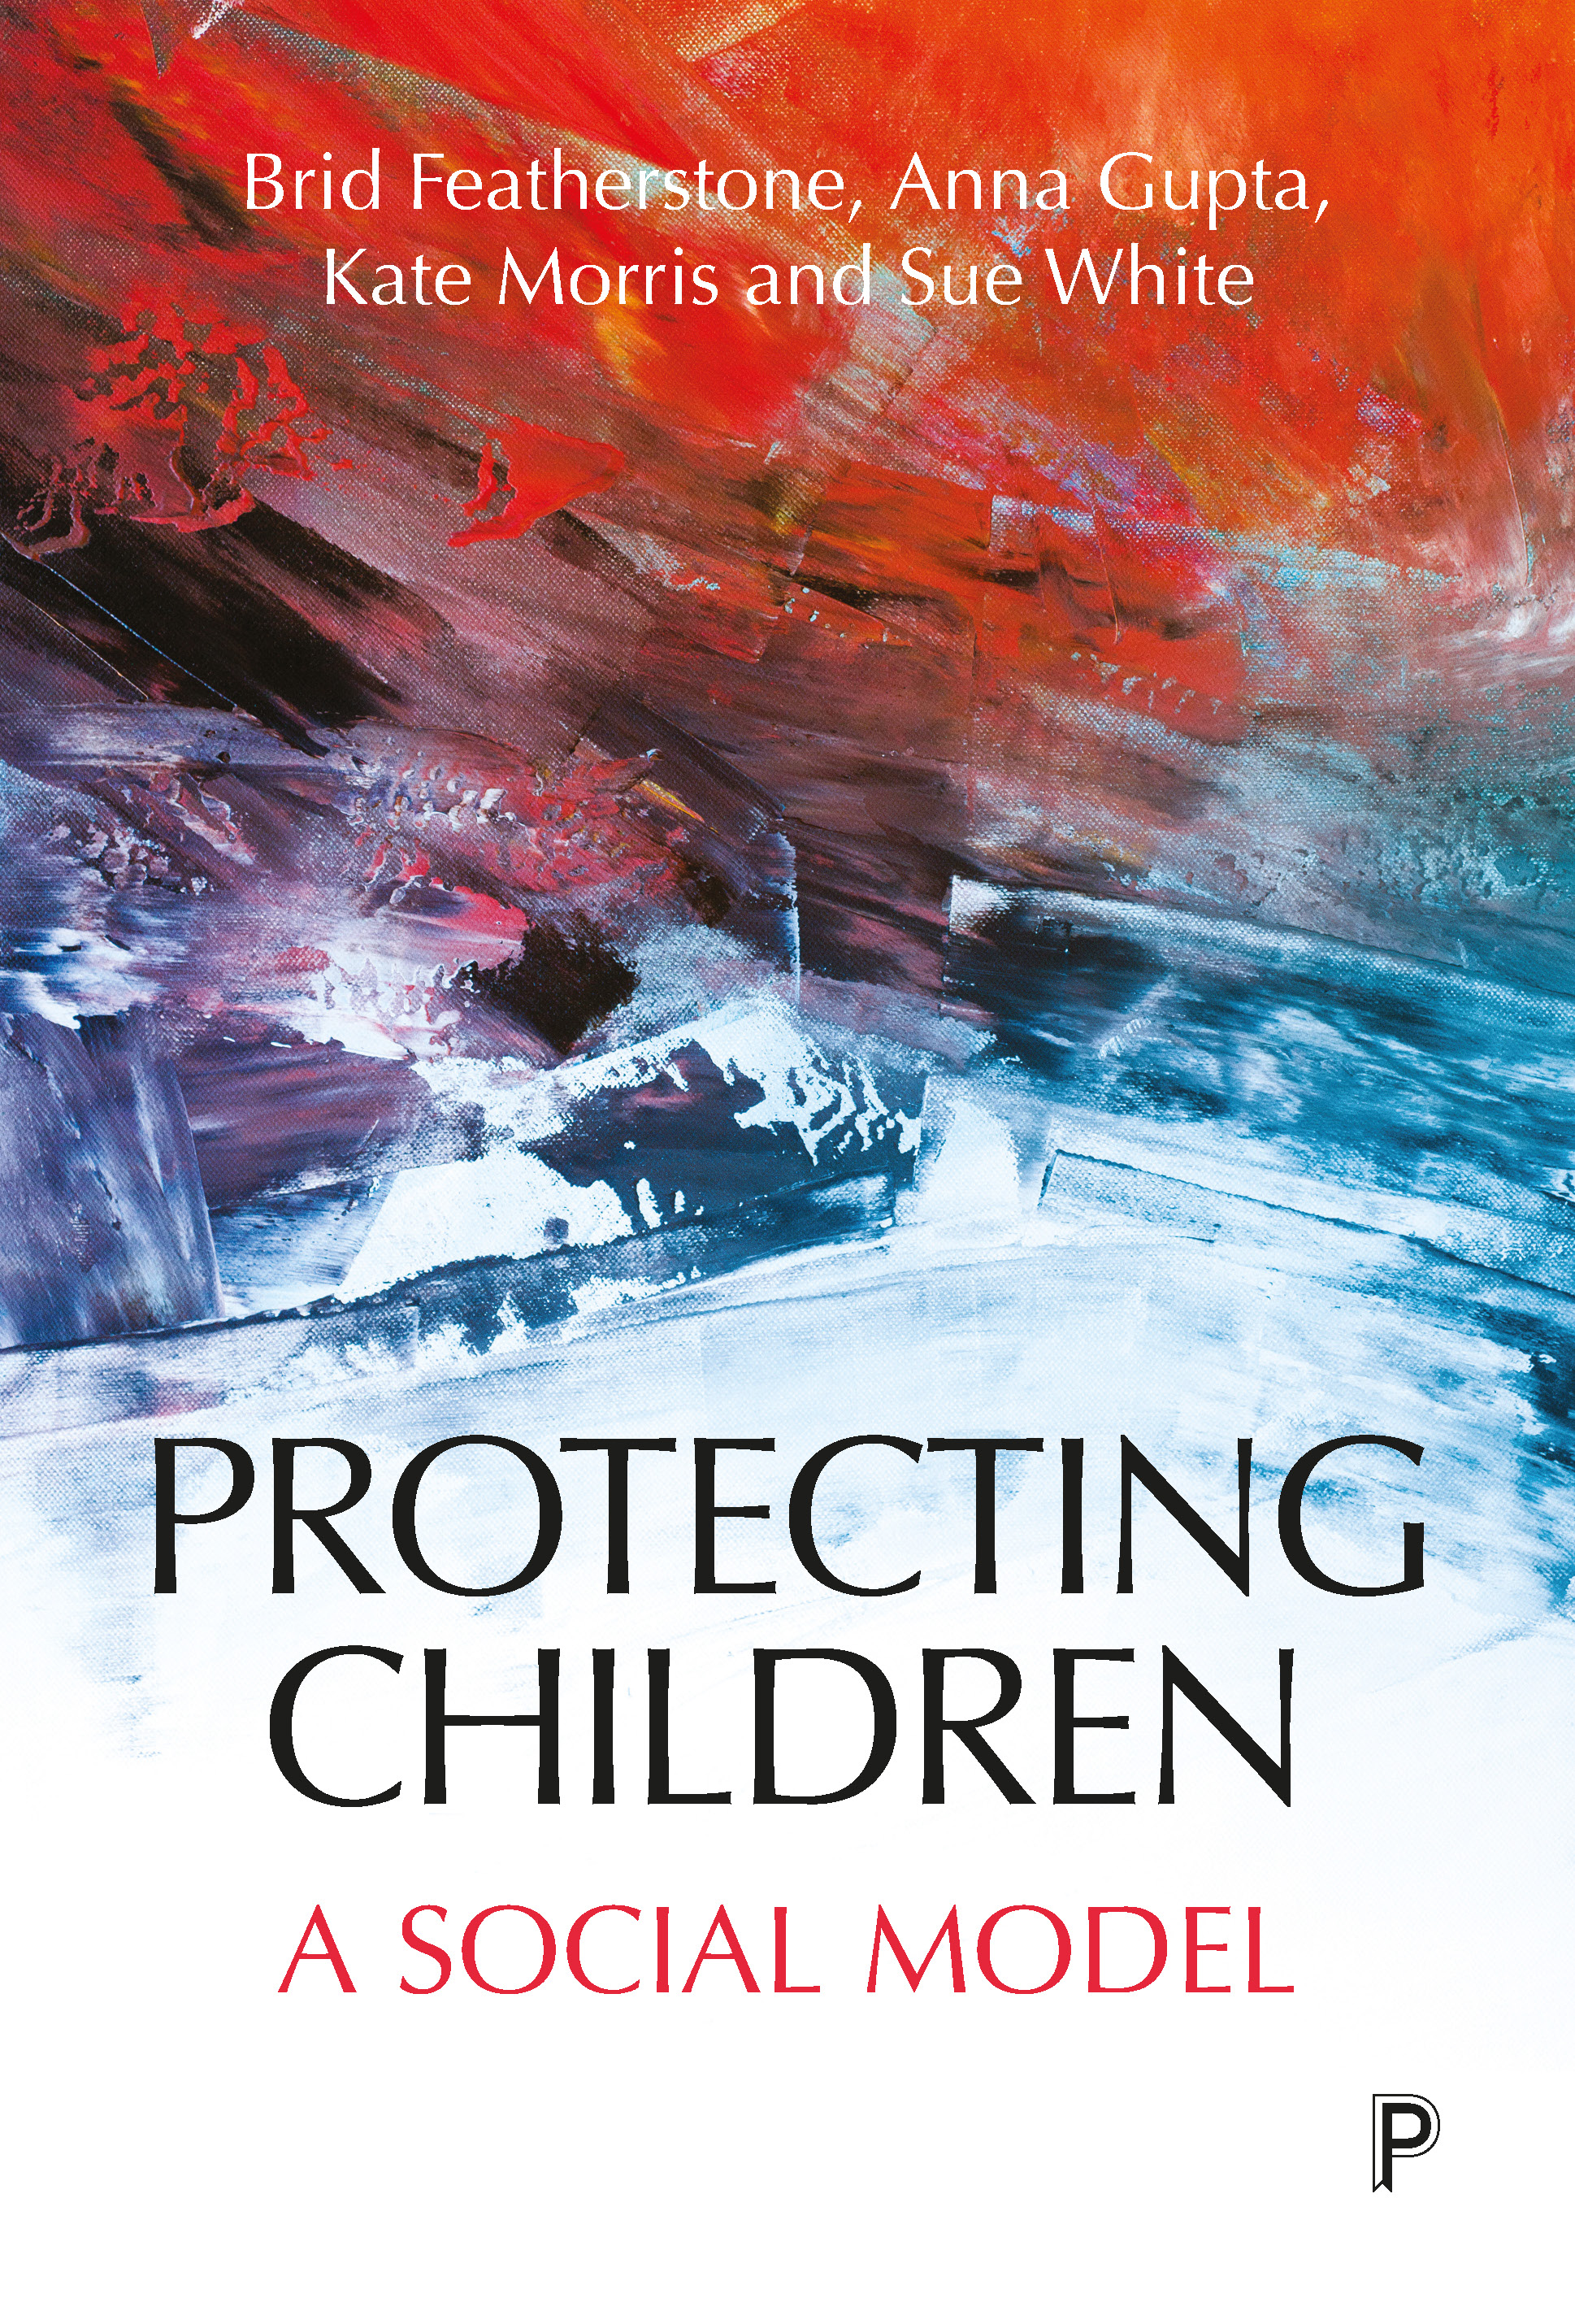 Protecting Children: Time for a new story